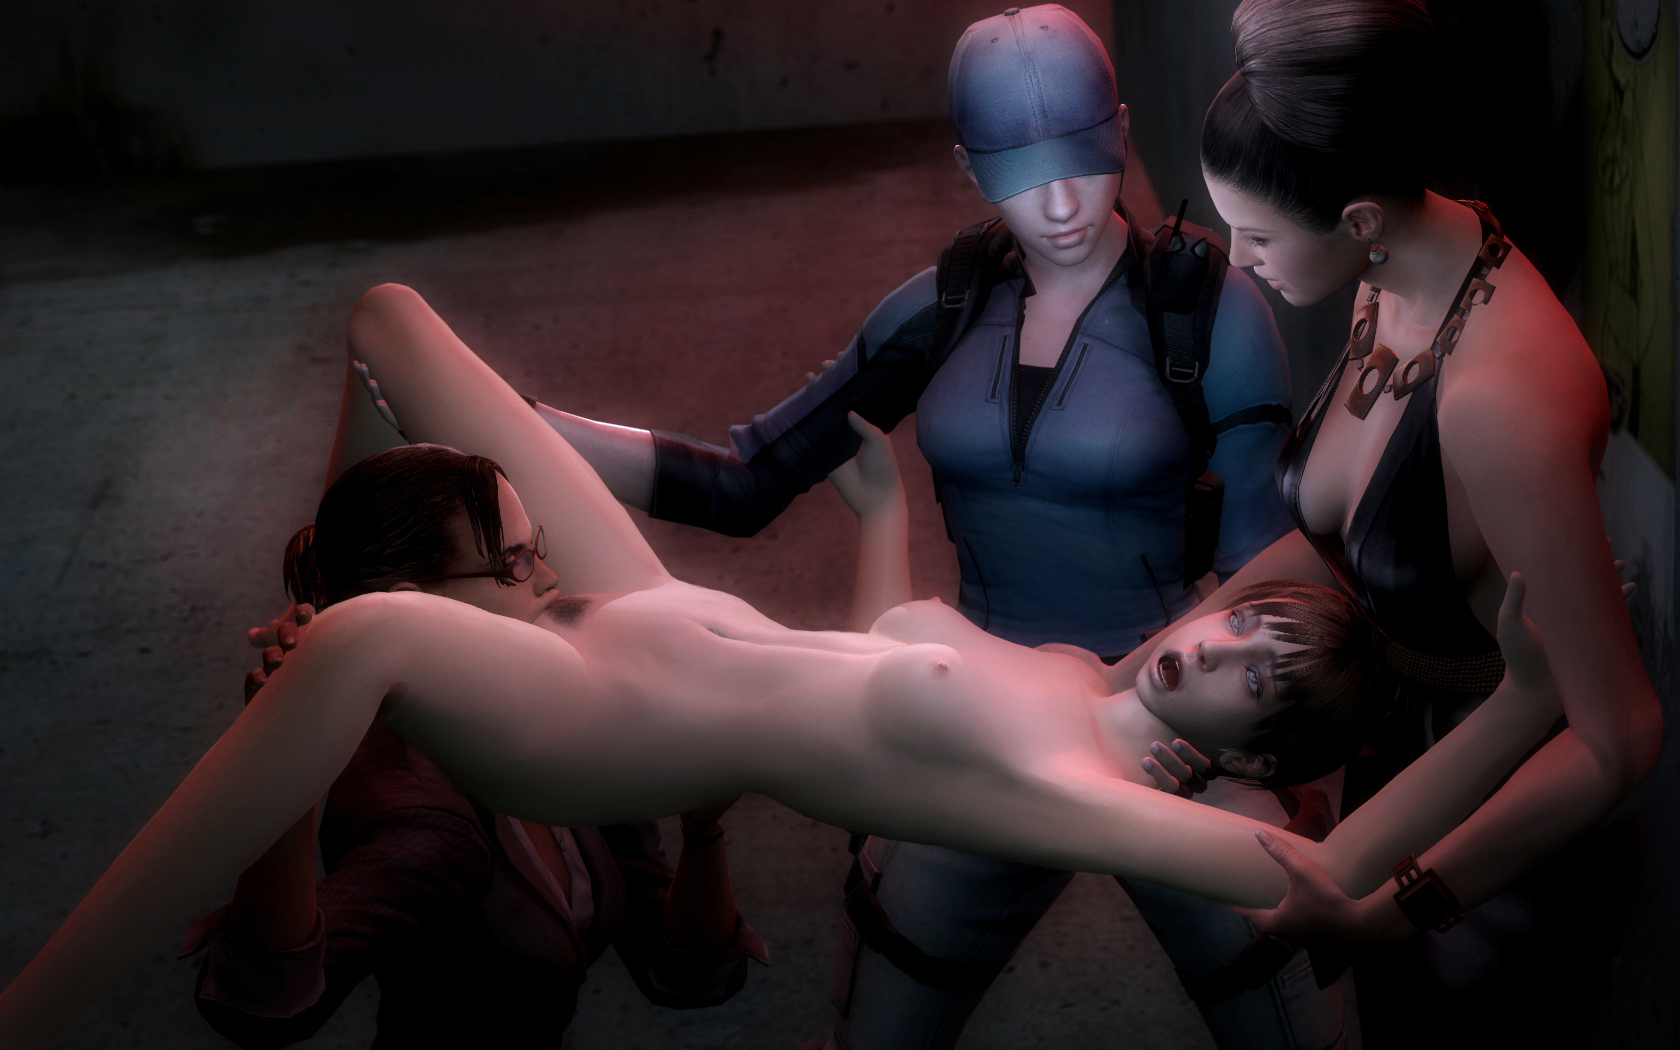 Resident Evil Excella Hentai image #197674